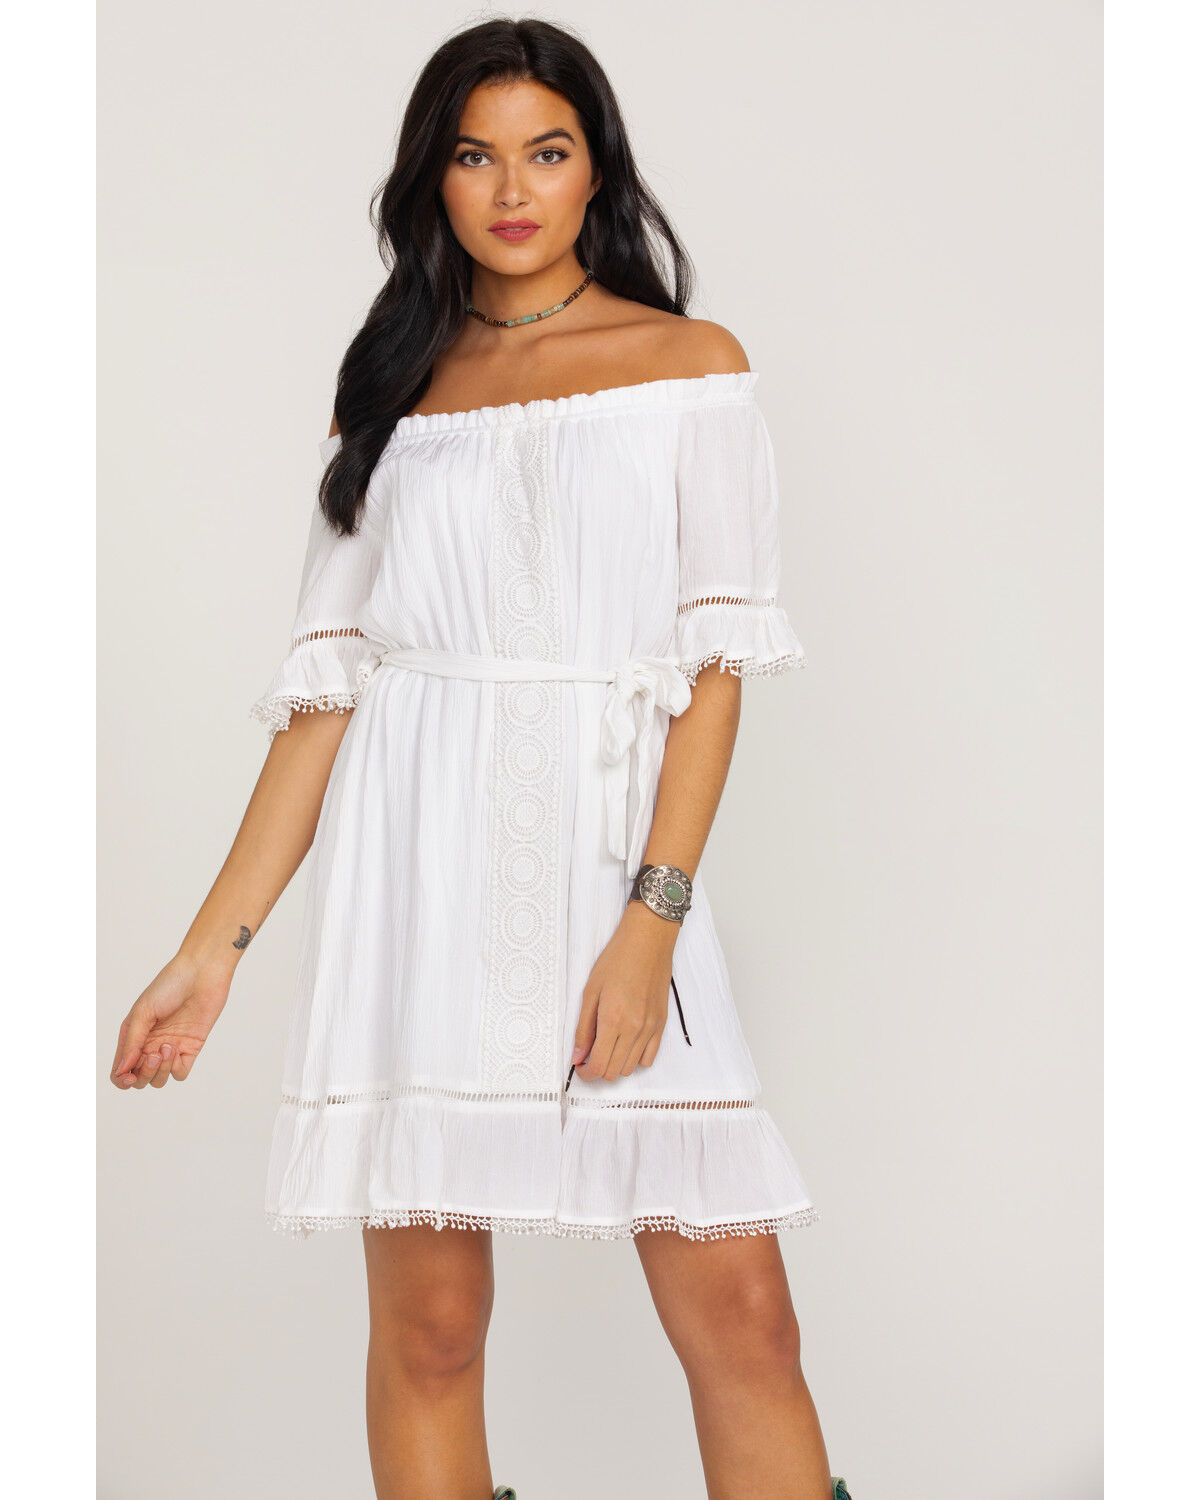 White Lace Dress with Sleeves